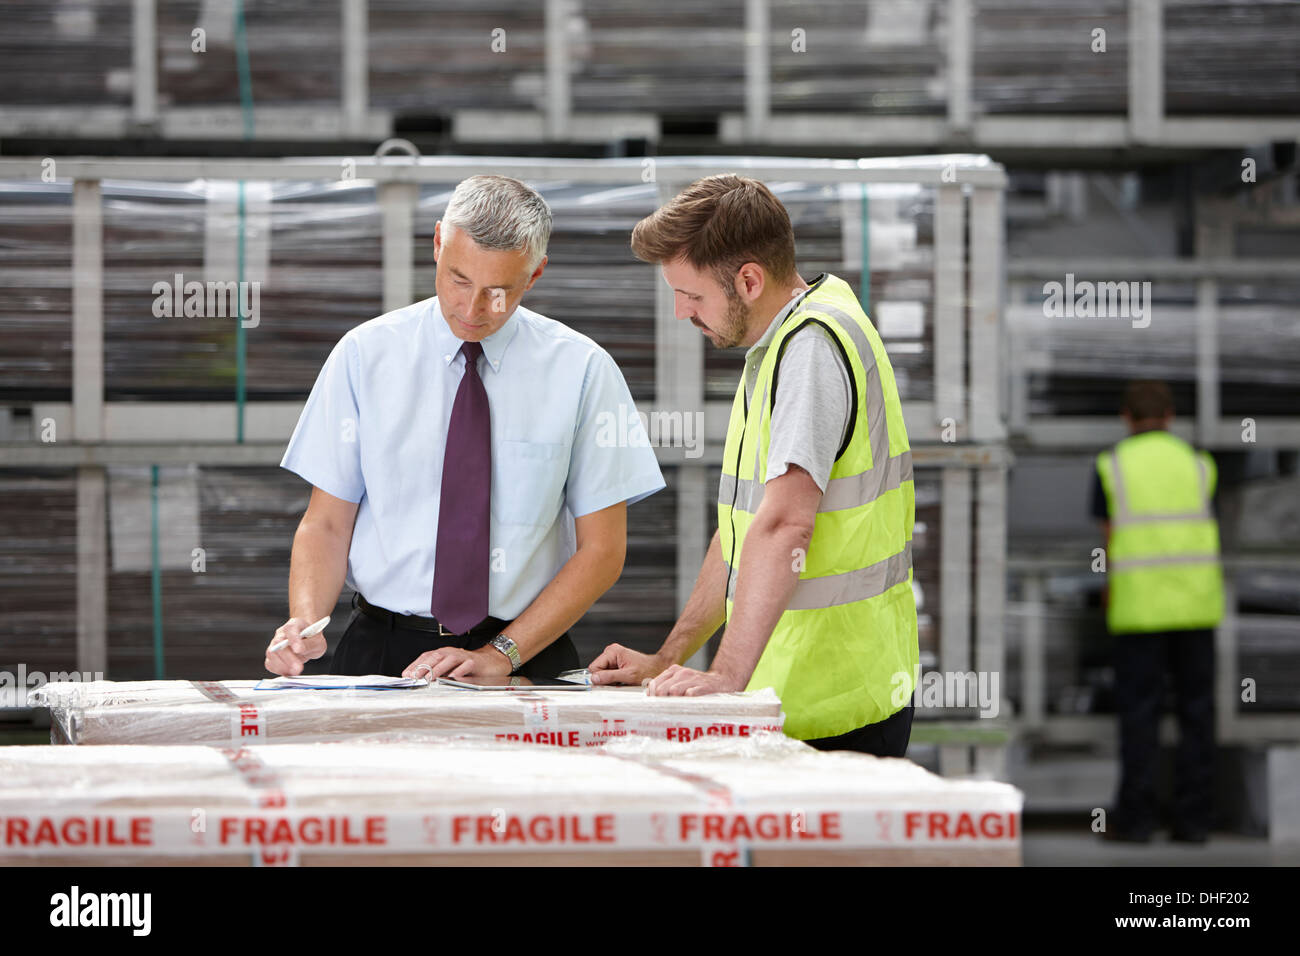 Warehouse worker and manager checking order in engineering warehouse - Stock Image